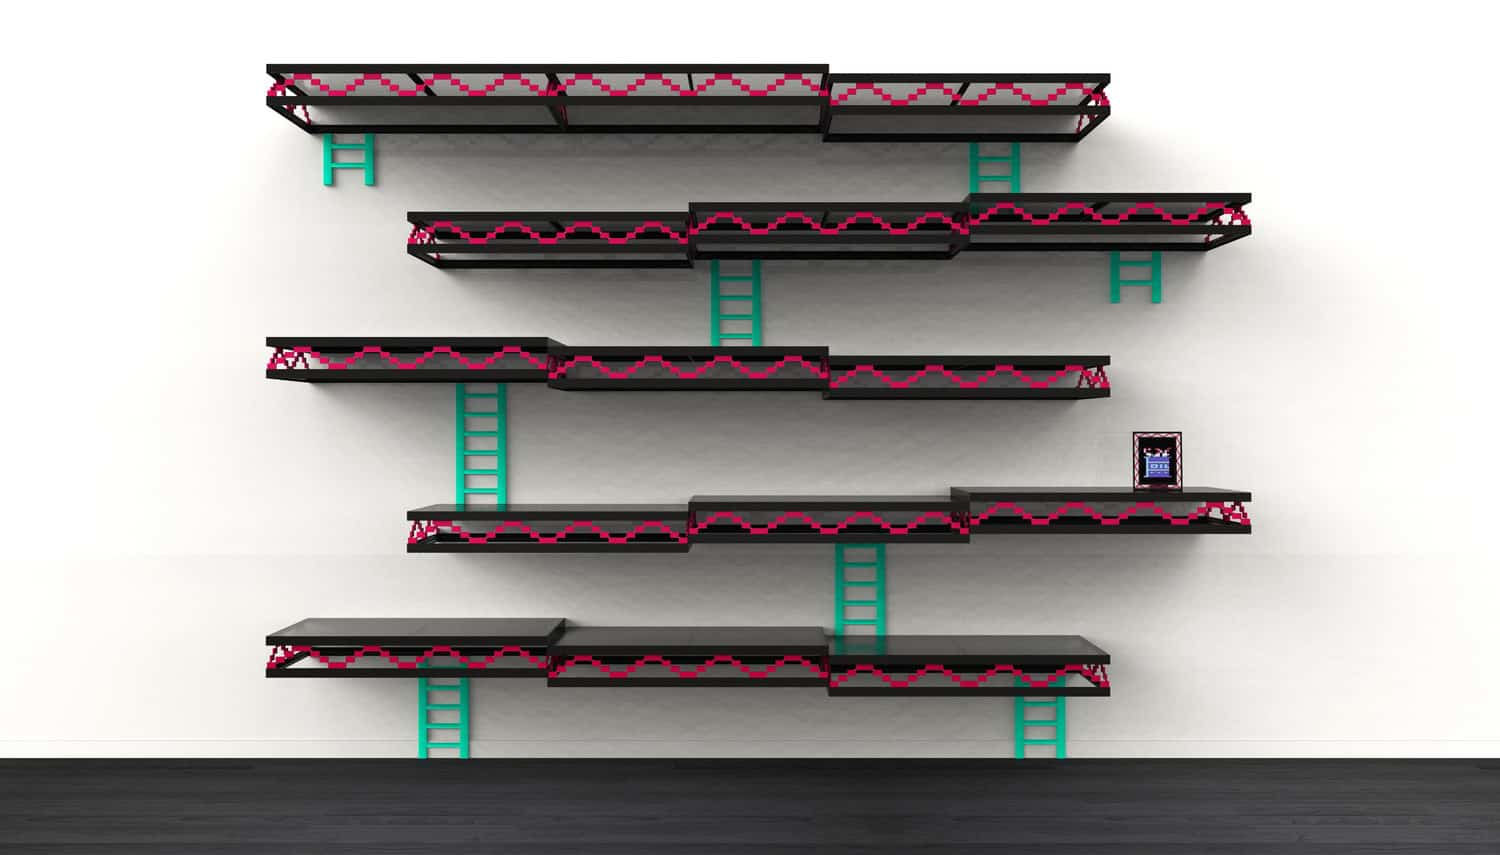 Donkey Kong Wall Stage where Mario First Appeared